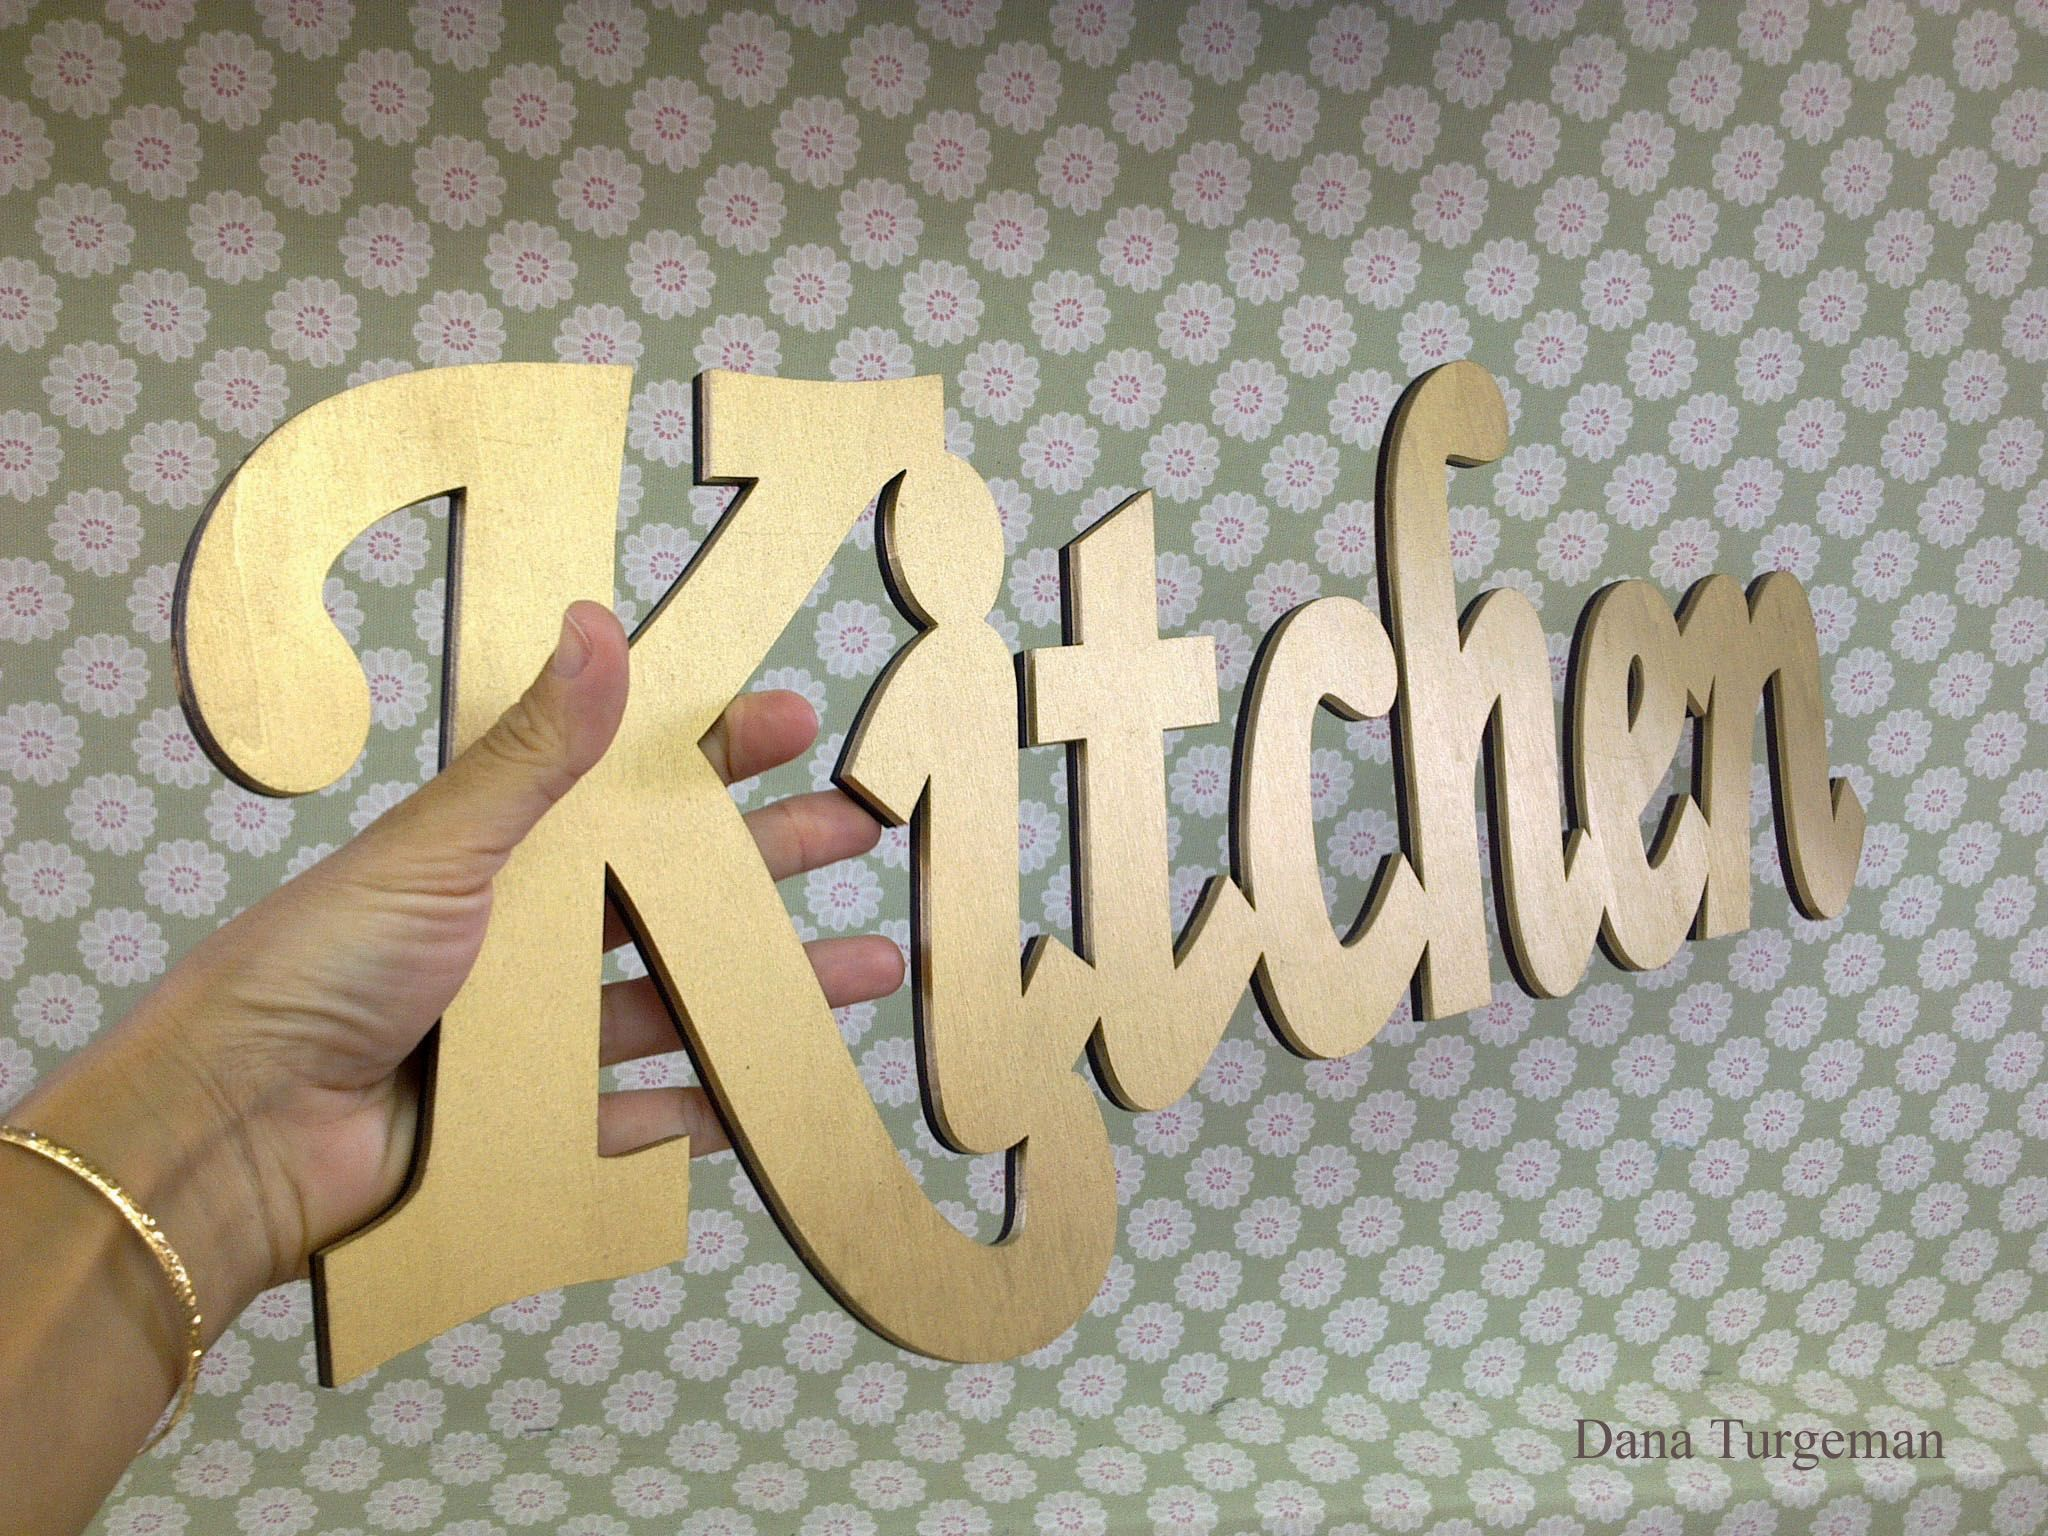 Decorative Wooden Kitchen Signs Unique Wooden Kitchen Sign Vintage Styledana Turgeman  Decorative Decorating Inspiration